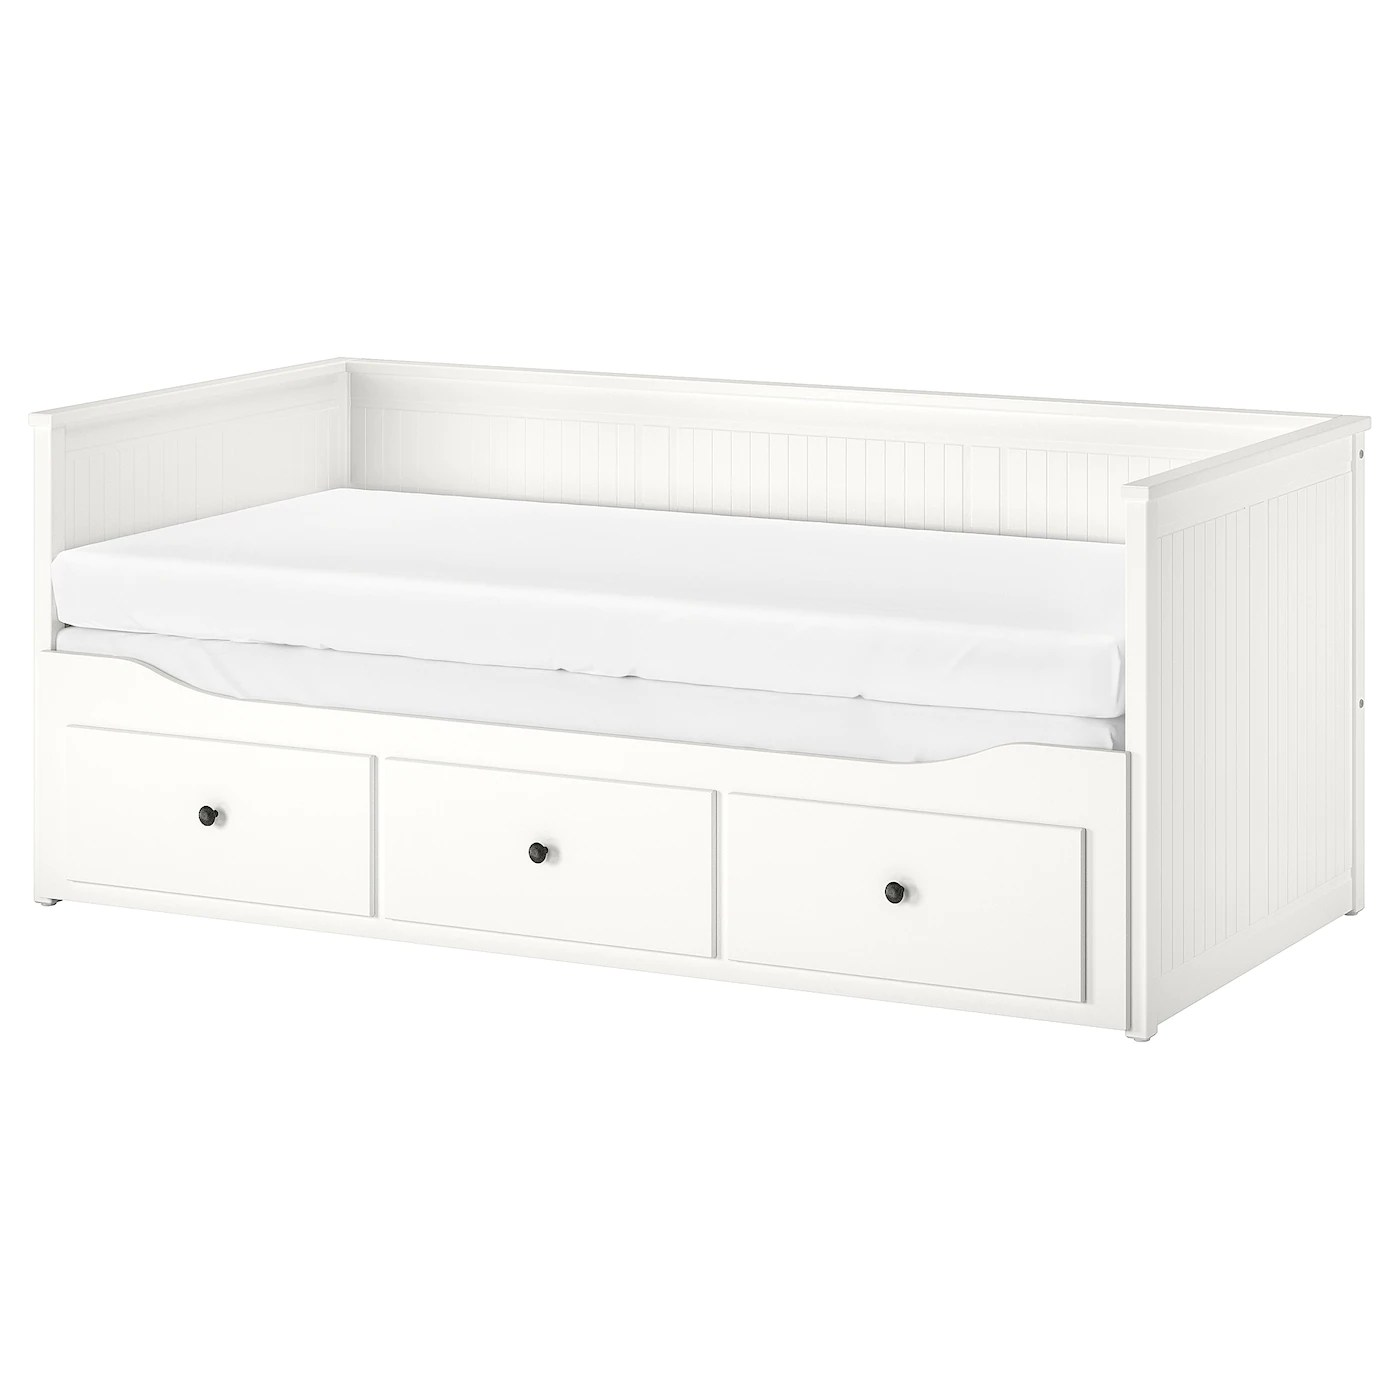 Daybed Frame With 3 Drawers Hemnes White